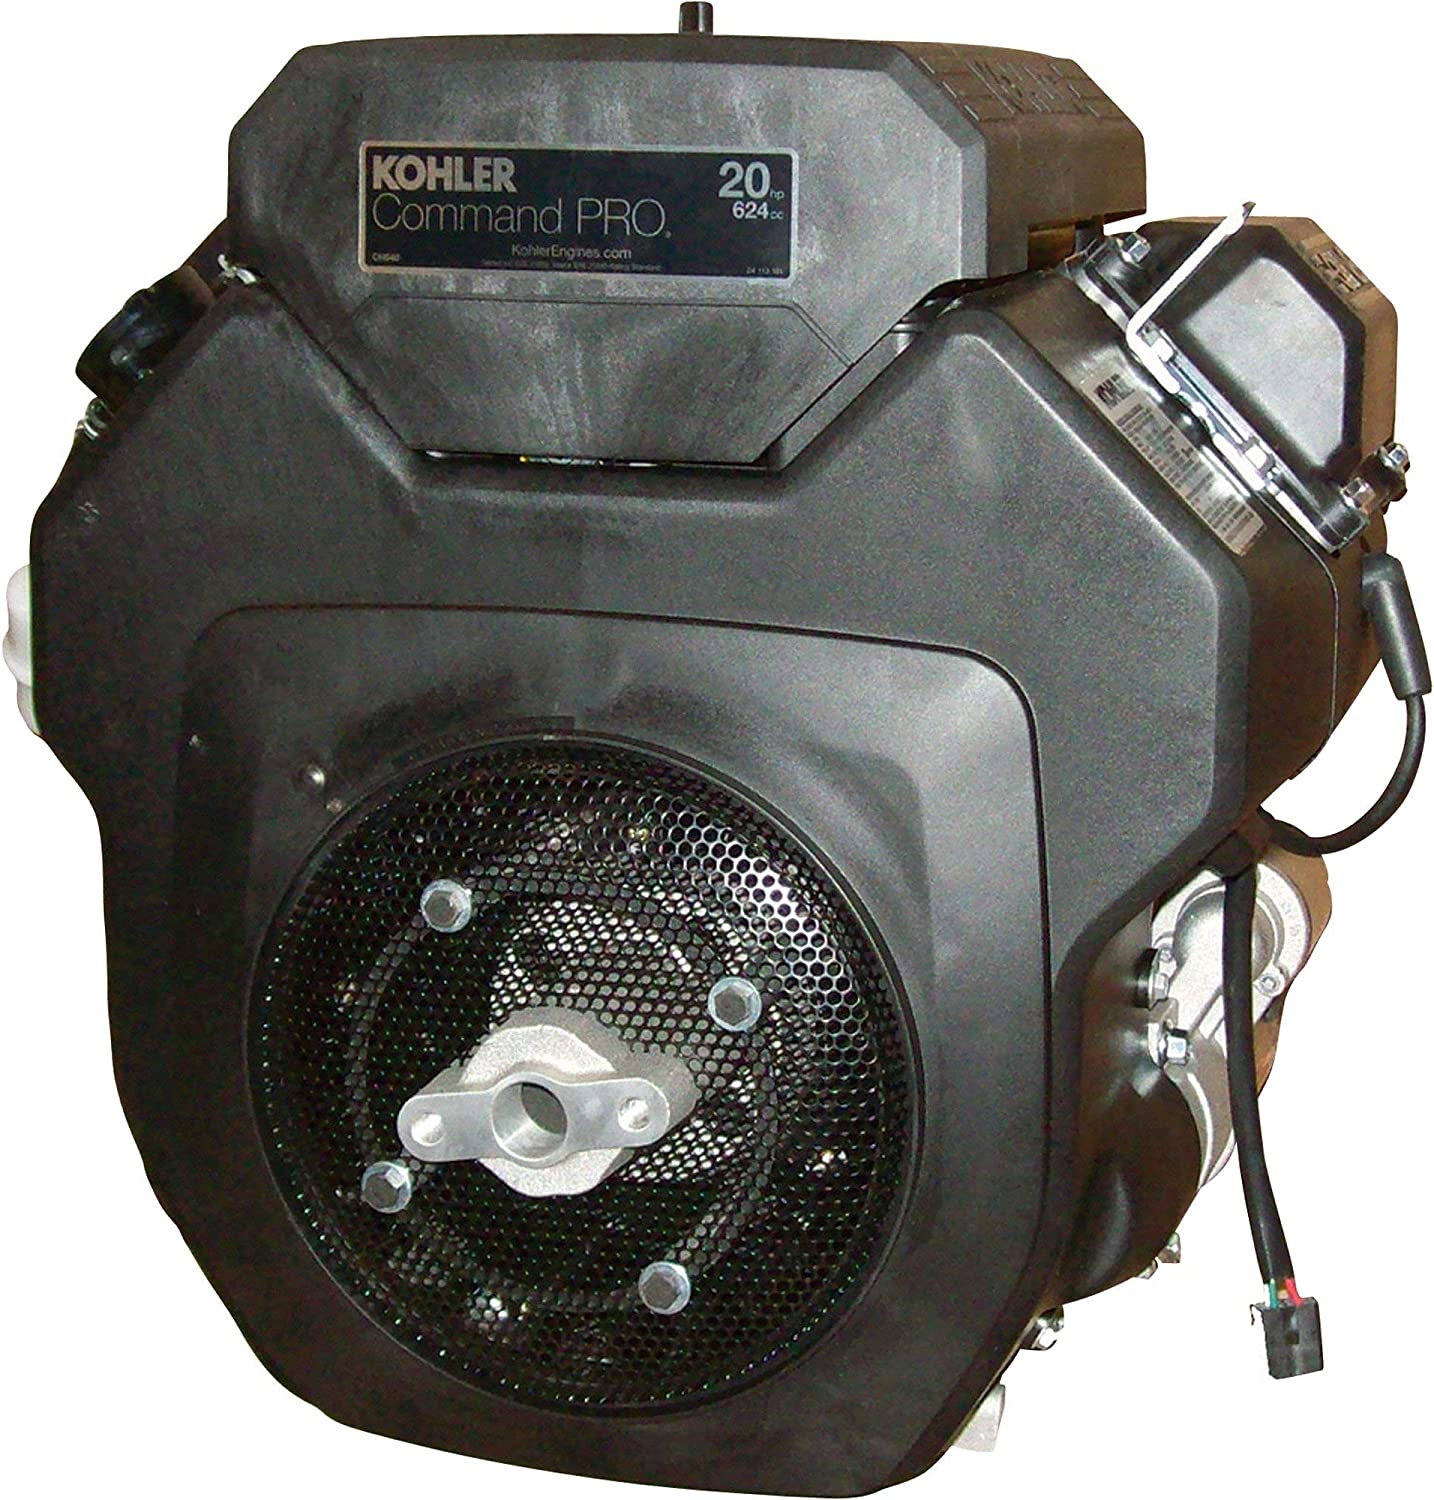 Kohler Command Pro OHV Horizontal Grasshopper Replacement Engine with Electric Start - 674cc, 1 1/8in. x 3 11/32in. Shaft, Model Number PA-CH640-3149